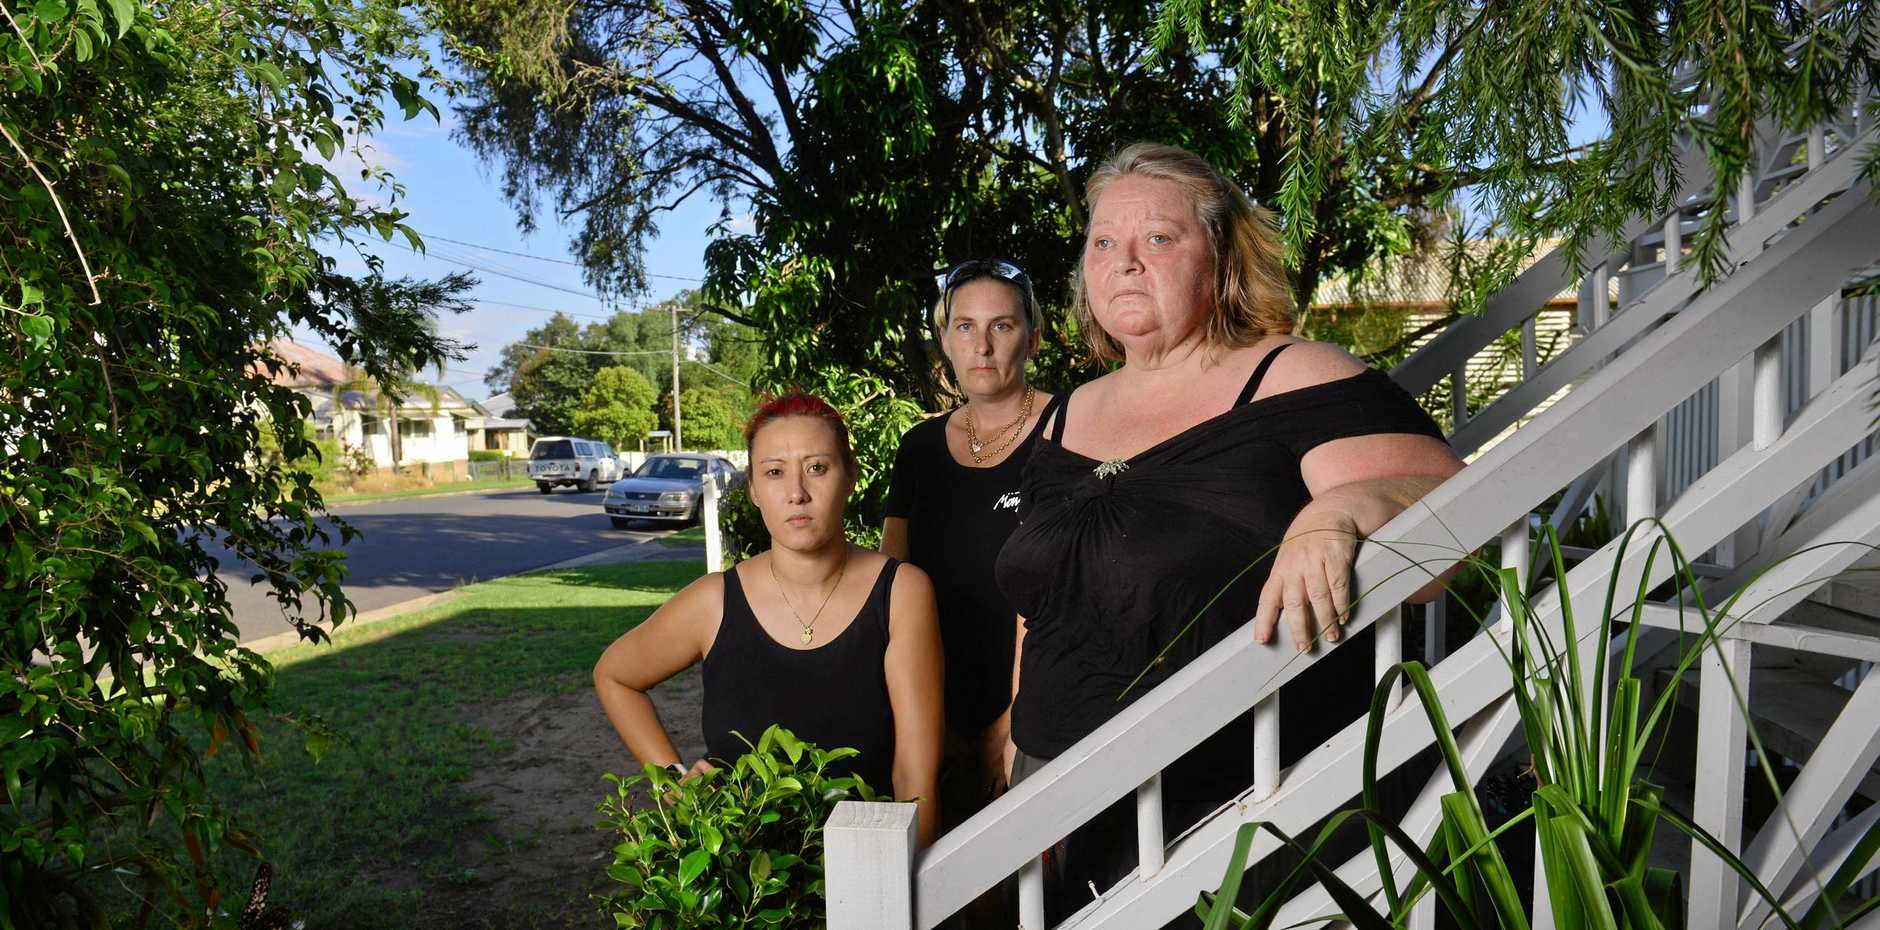 CRIME FIGHTERS: Leichhardt, One Mile and Wulkuraka Community Group memebers from left, Alyson Brimecombe, Michelle Hetherington and Chris Radke are fed up with the crime in their suburb.